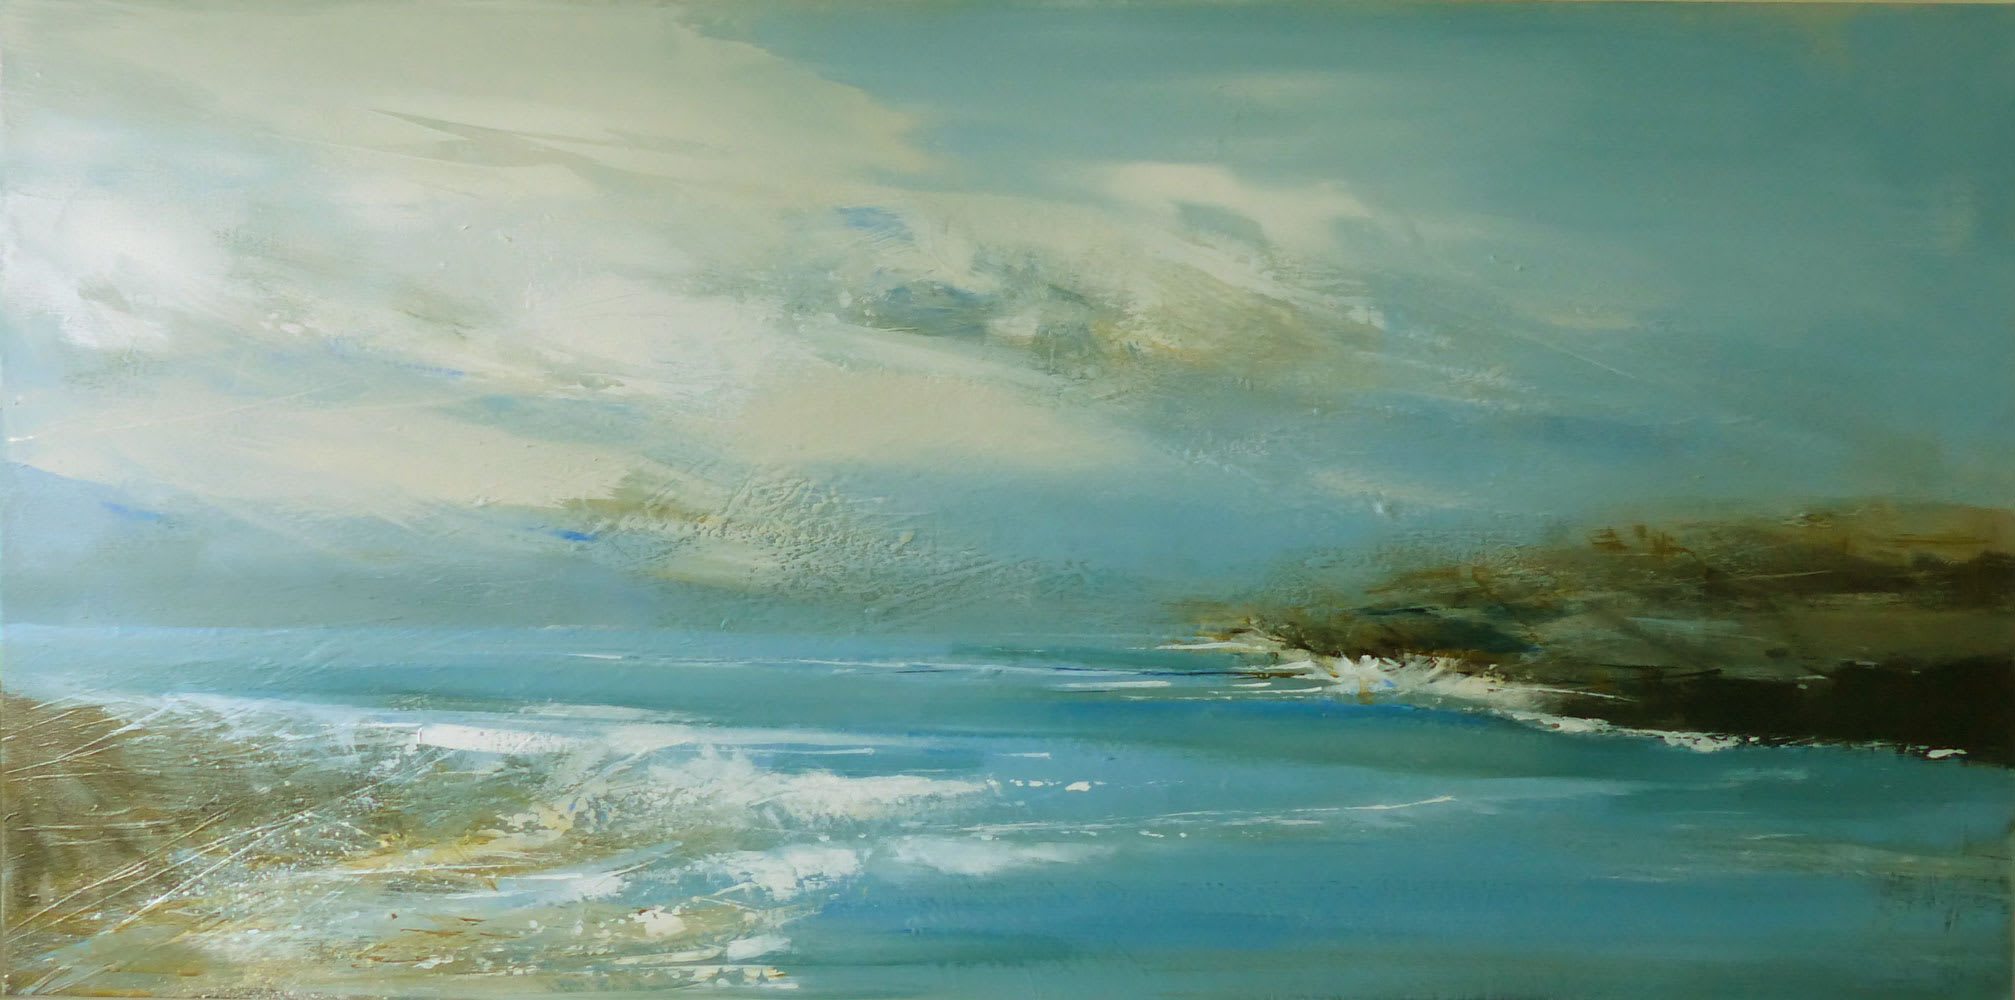 """<span class=""""link fancybox-details-link""""><a href=""""/artists/92-jenny-hirst/works/7009-jenny-hirst-bright-day-2020/"""">View Detail Page</a></span><div class=""""artist""""><strong>Jenny Hirst</strong></div> b. 1954 <div class=""""title""""><em>Bright Day</em>, 2020</div> <div class=""""medium"""">Acrylic on canvas (framed)</div> <div class=""""dimensions"""">45cm x 90cm </div><div class=""""price"""">£1,250.00</div><div class=""""copyright_line"""">Own Art £125 x 10 months. 0% finance</div>"""